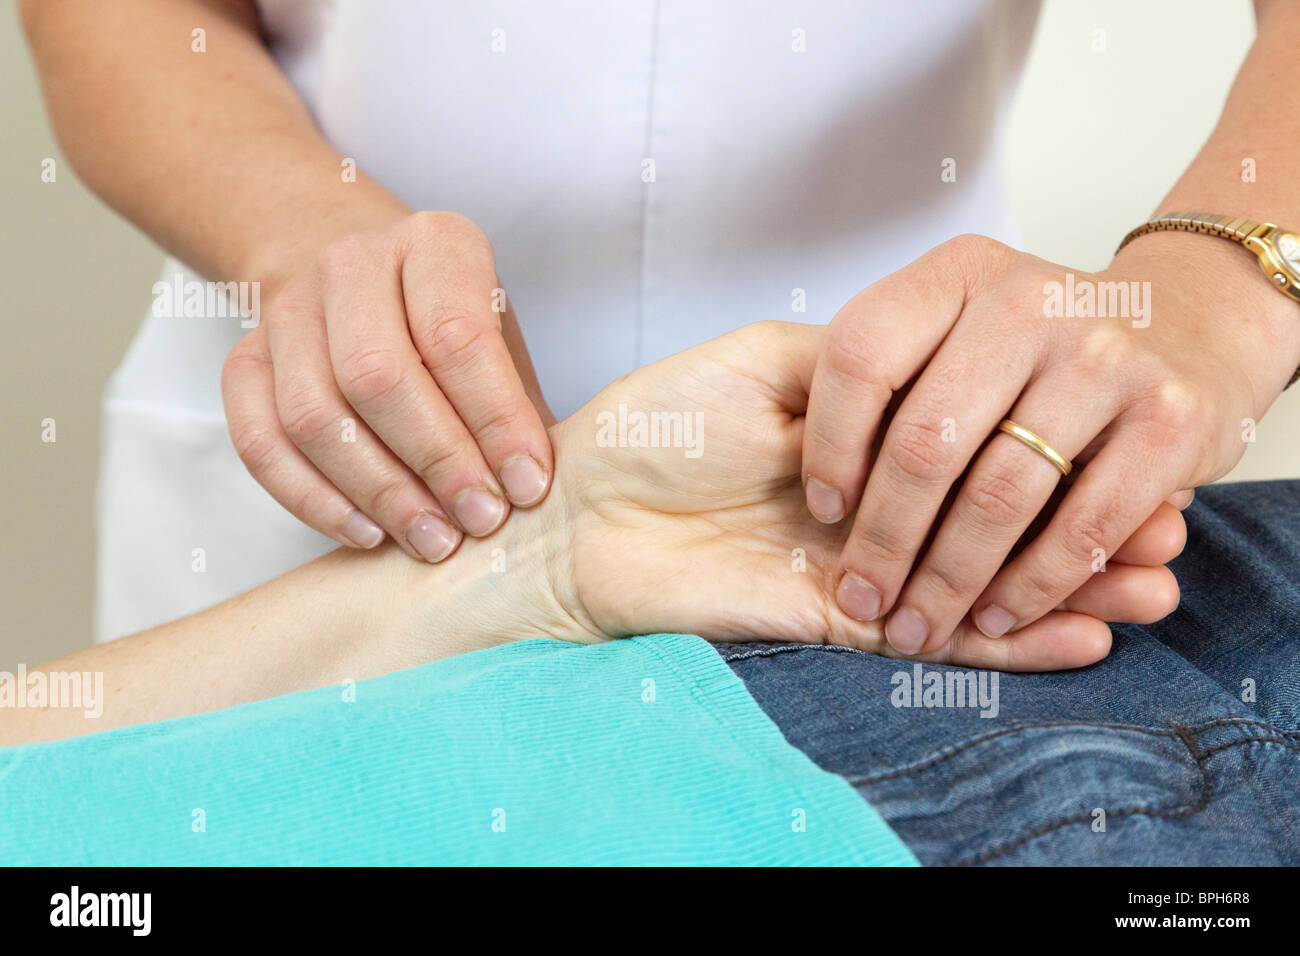 nurse checking a patient's heartbeat pulse in wrist - Stock Image